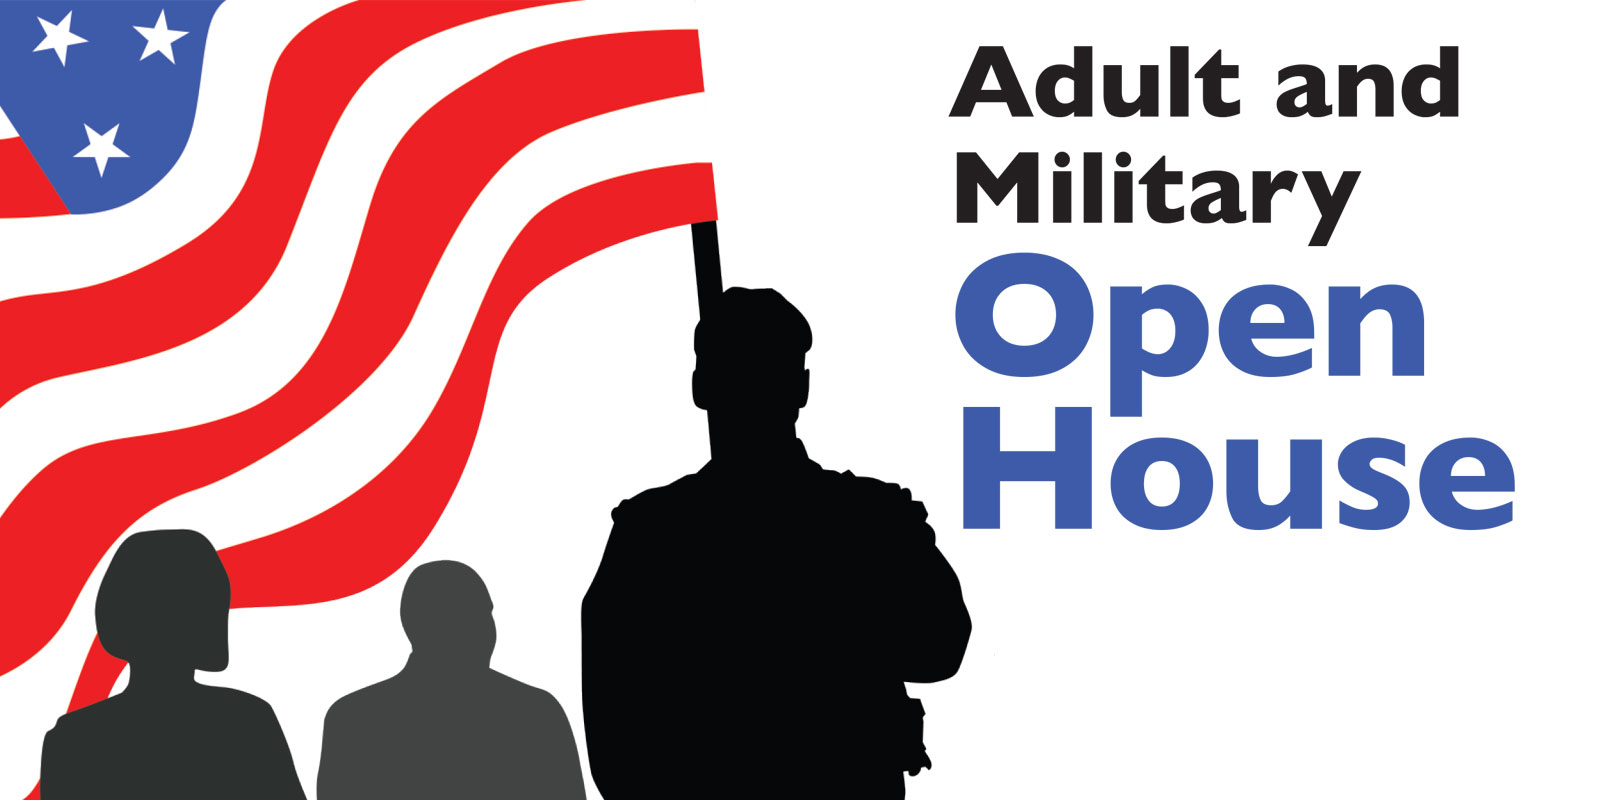 Adult and Military Open House